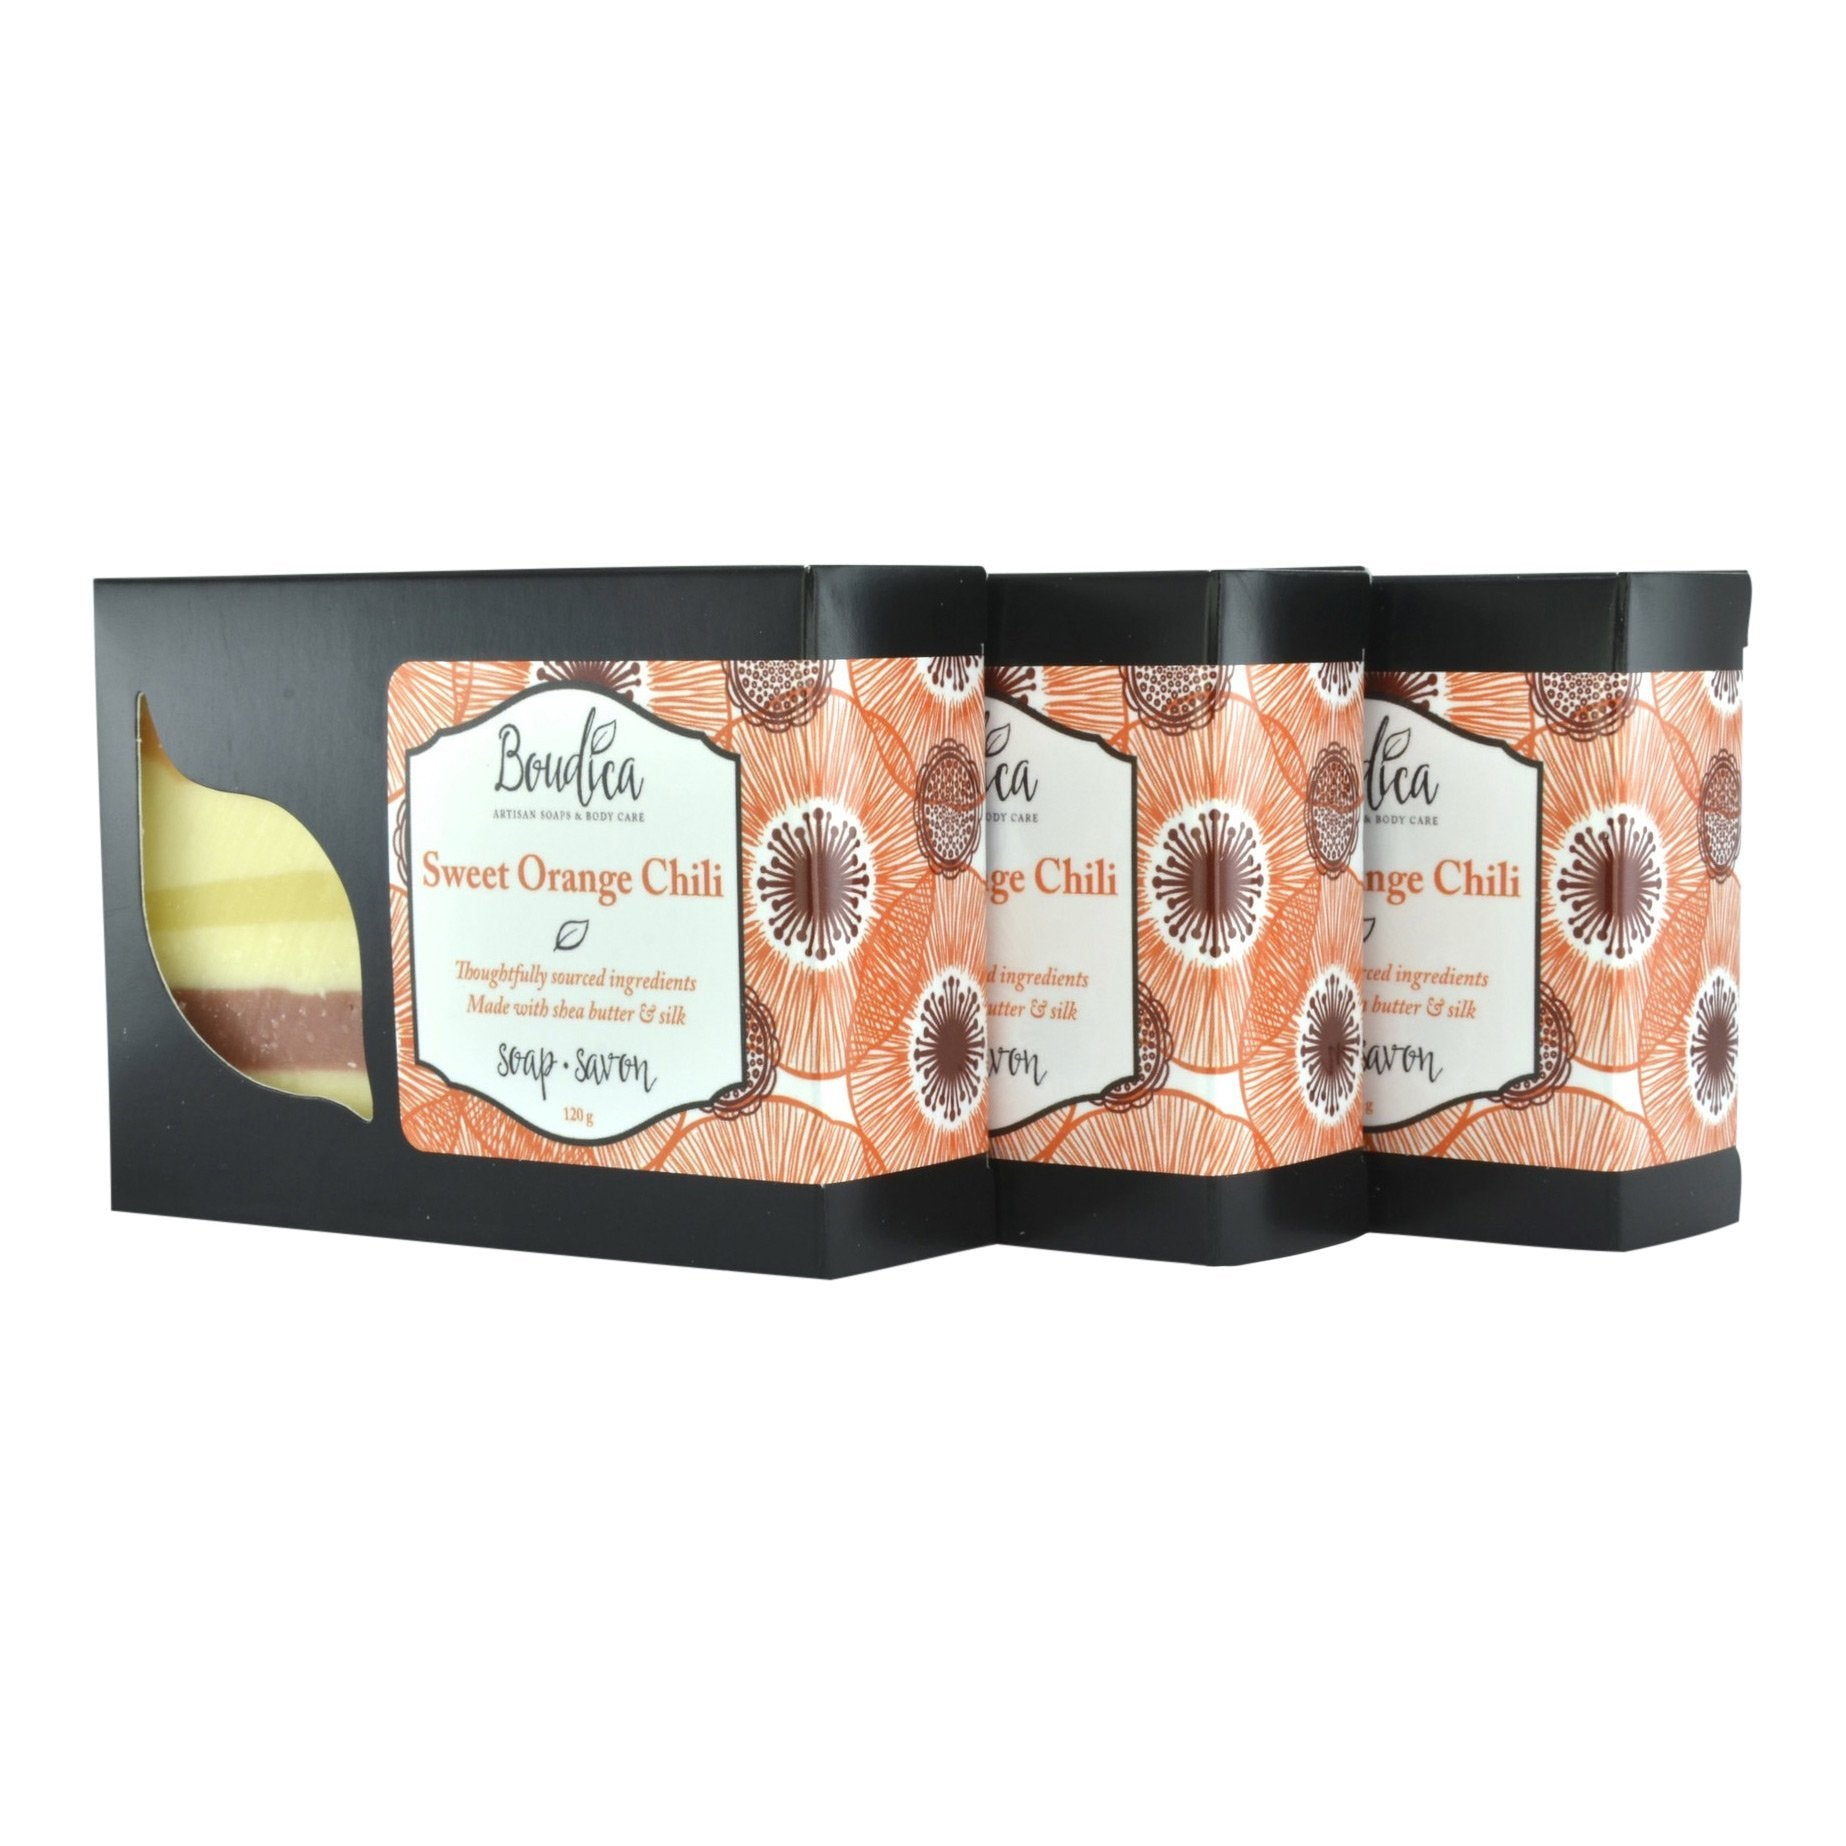 Sweet Orange Chili soap, gift packaging - Boudica Body Care